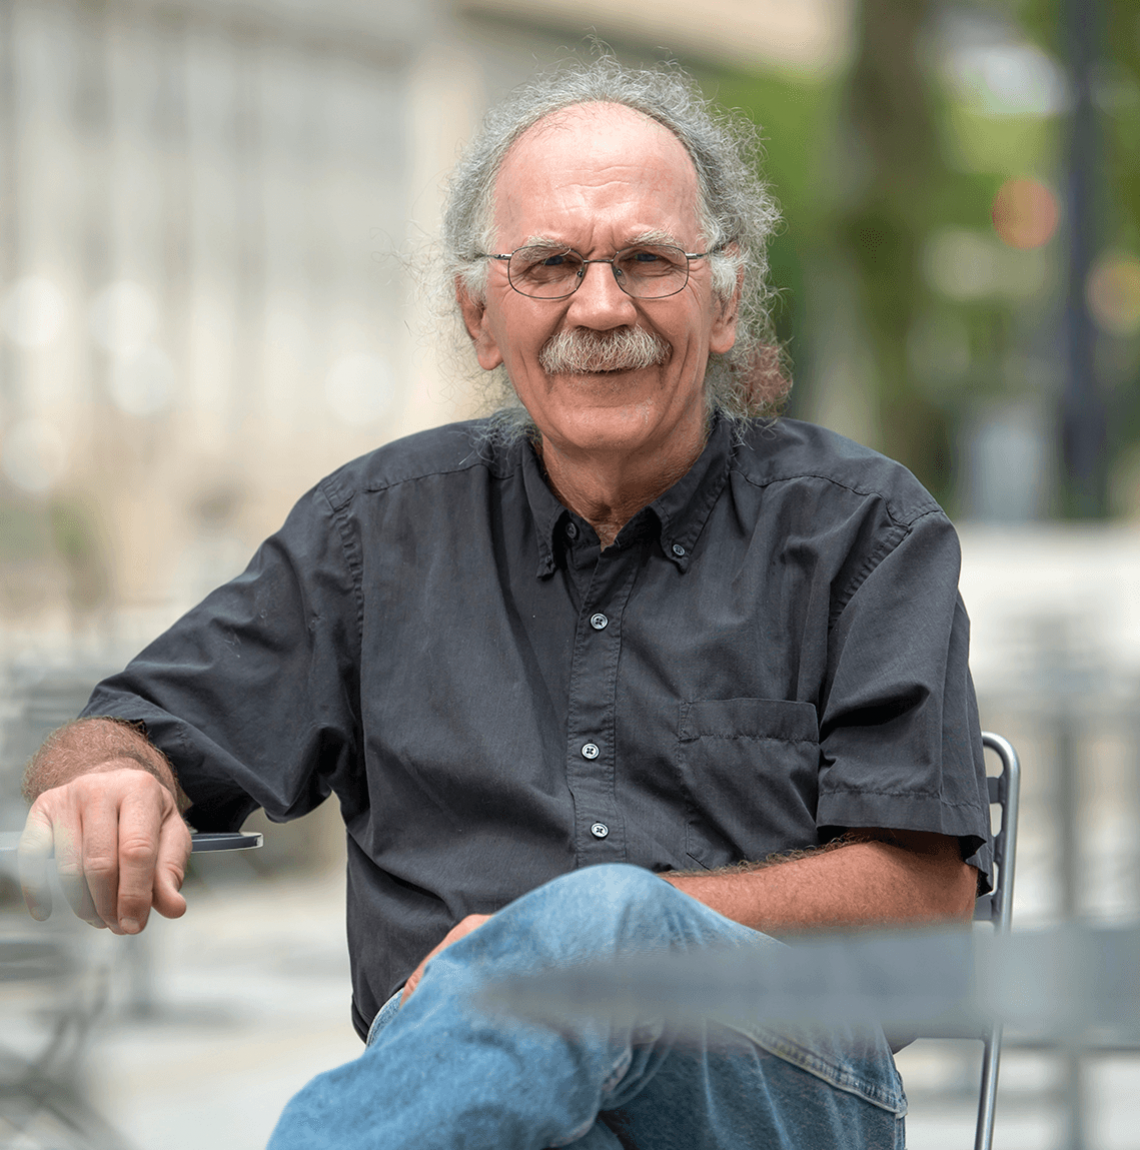 white man with gray curly hair, mustache wearing dark gray button-down and blue jeans